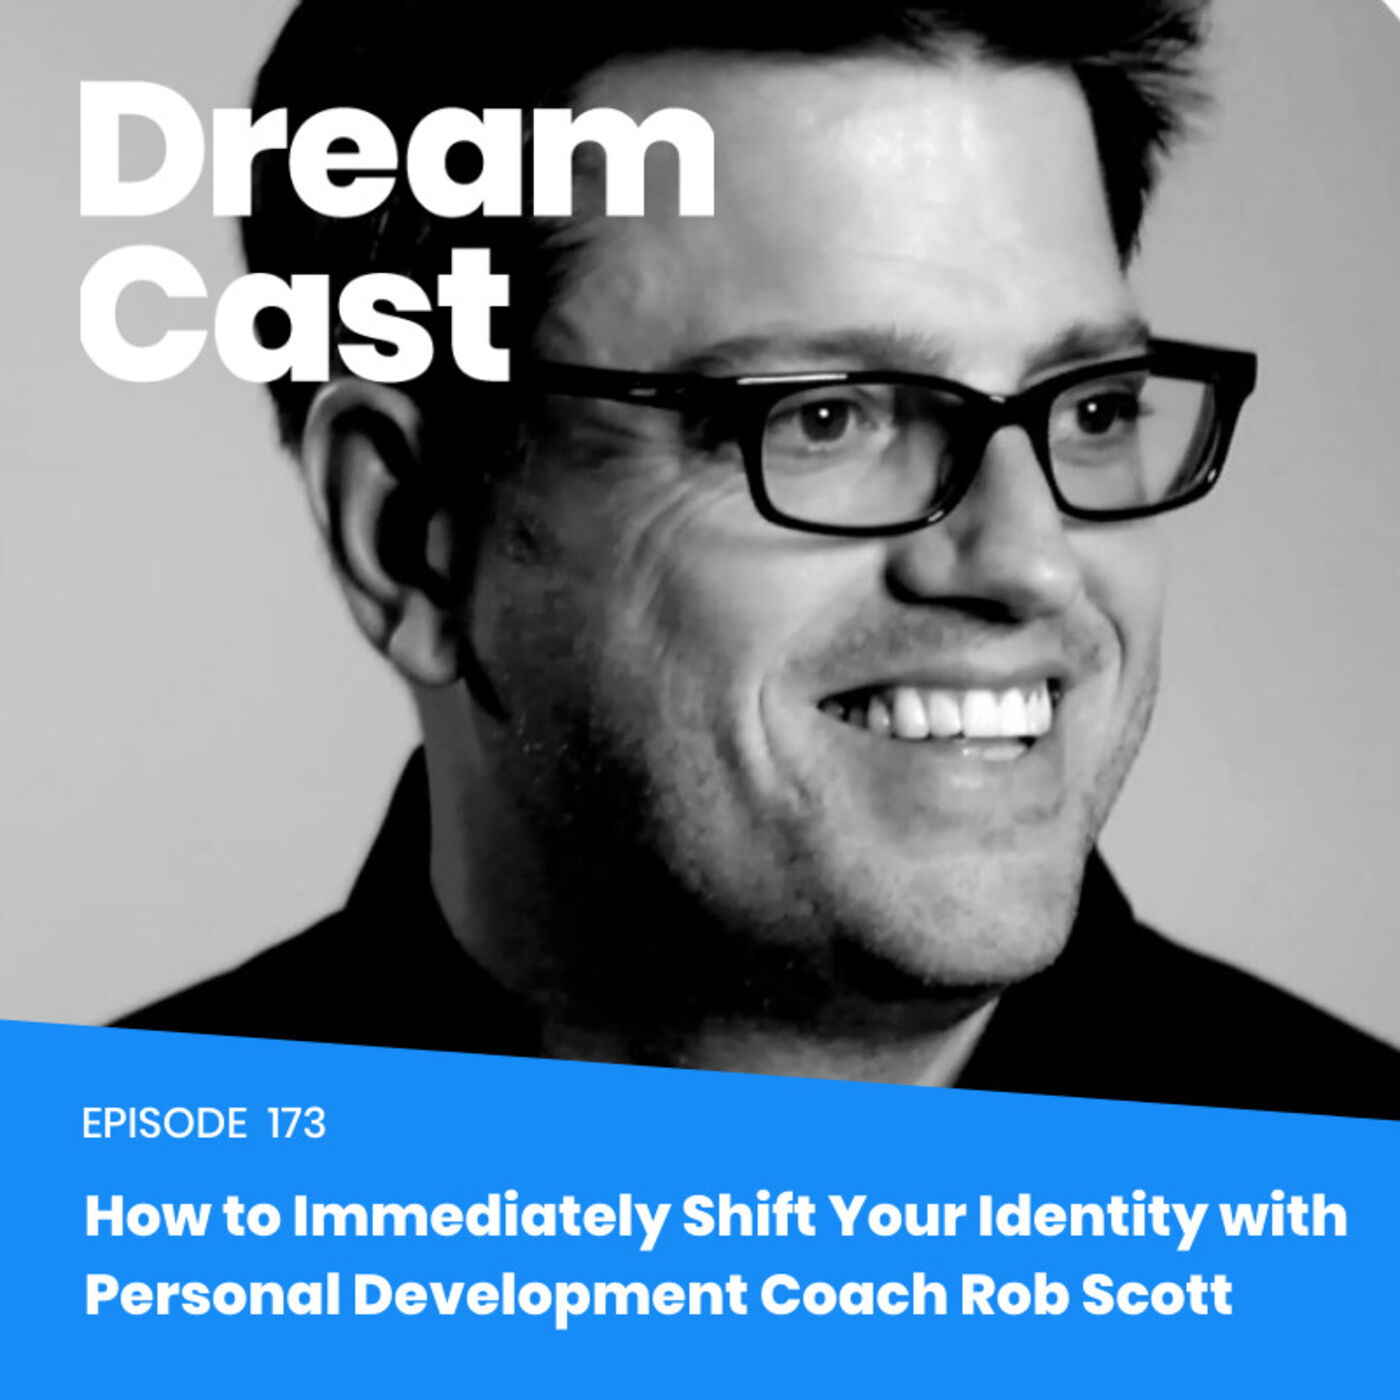 Episode 173 - How to Immediately Shift Your Identity with Personal Development Coach Rob Scott